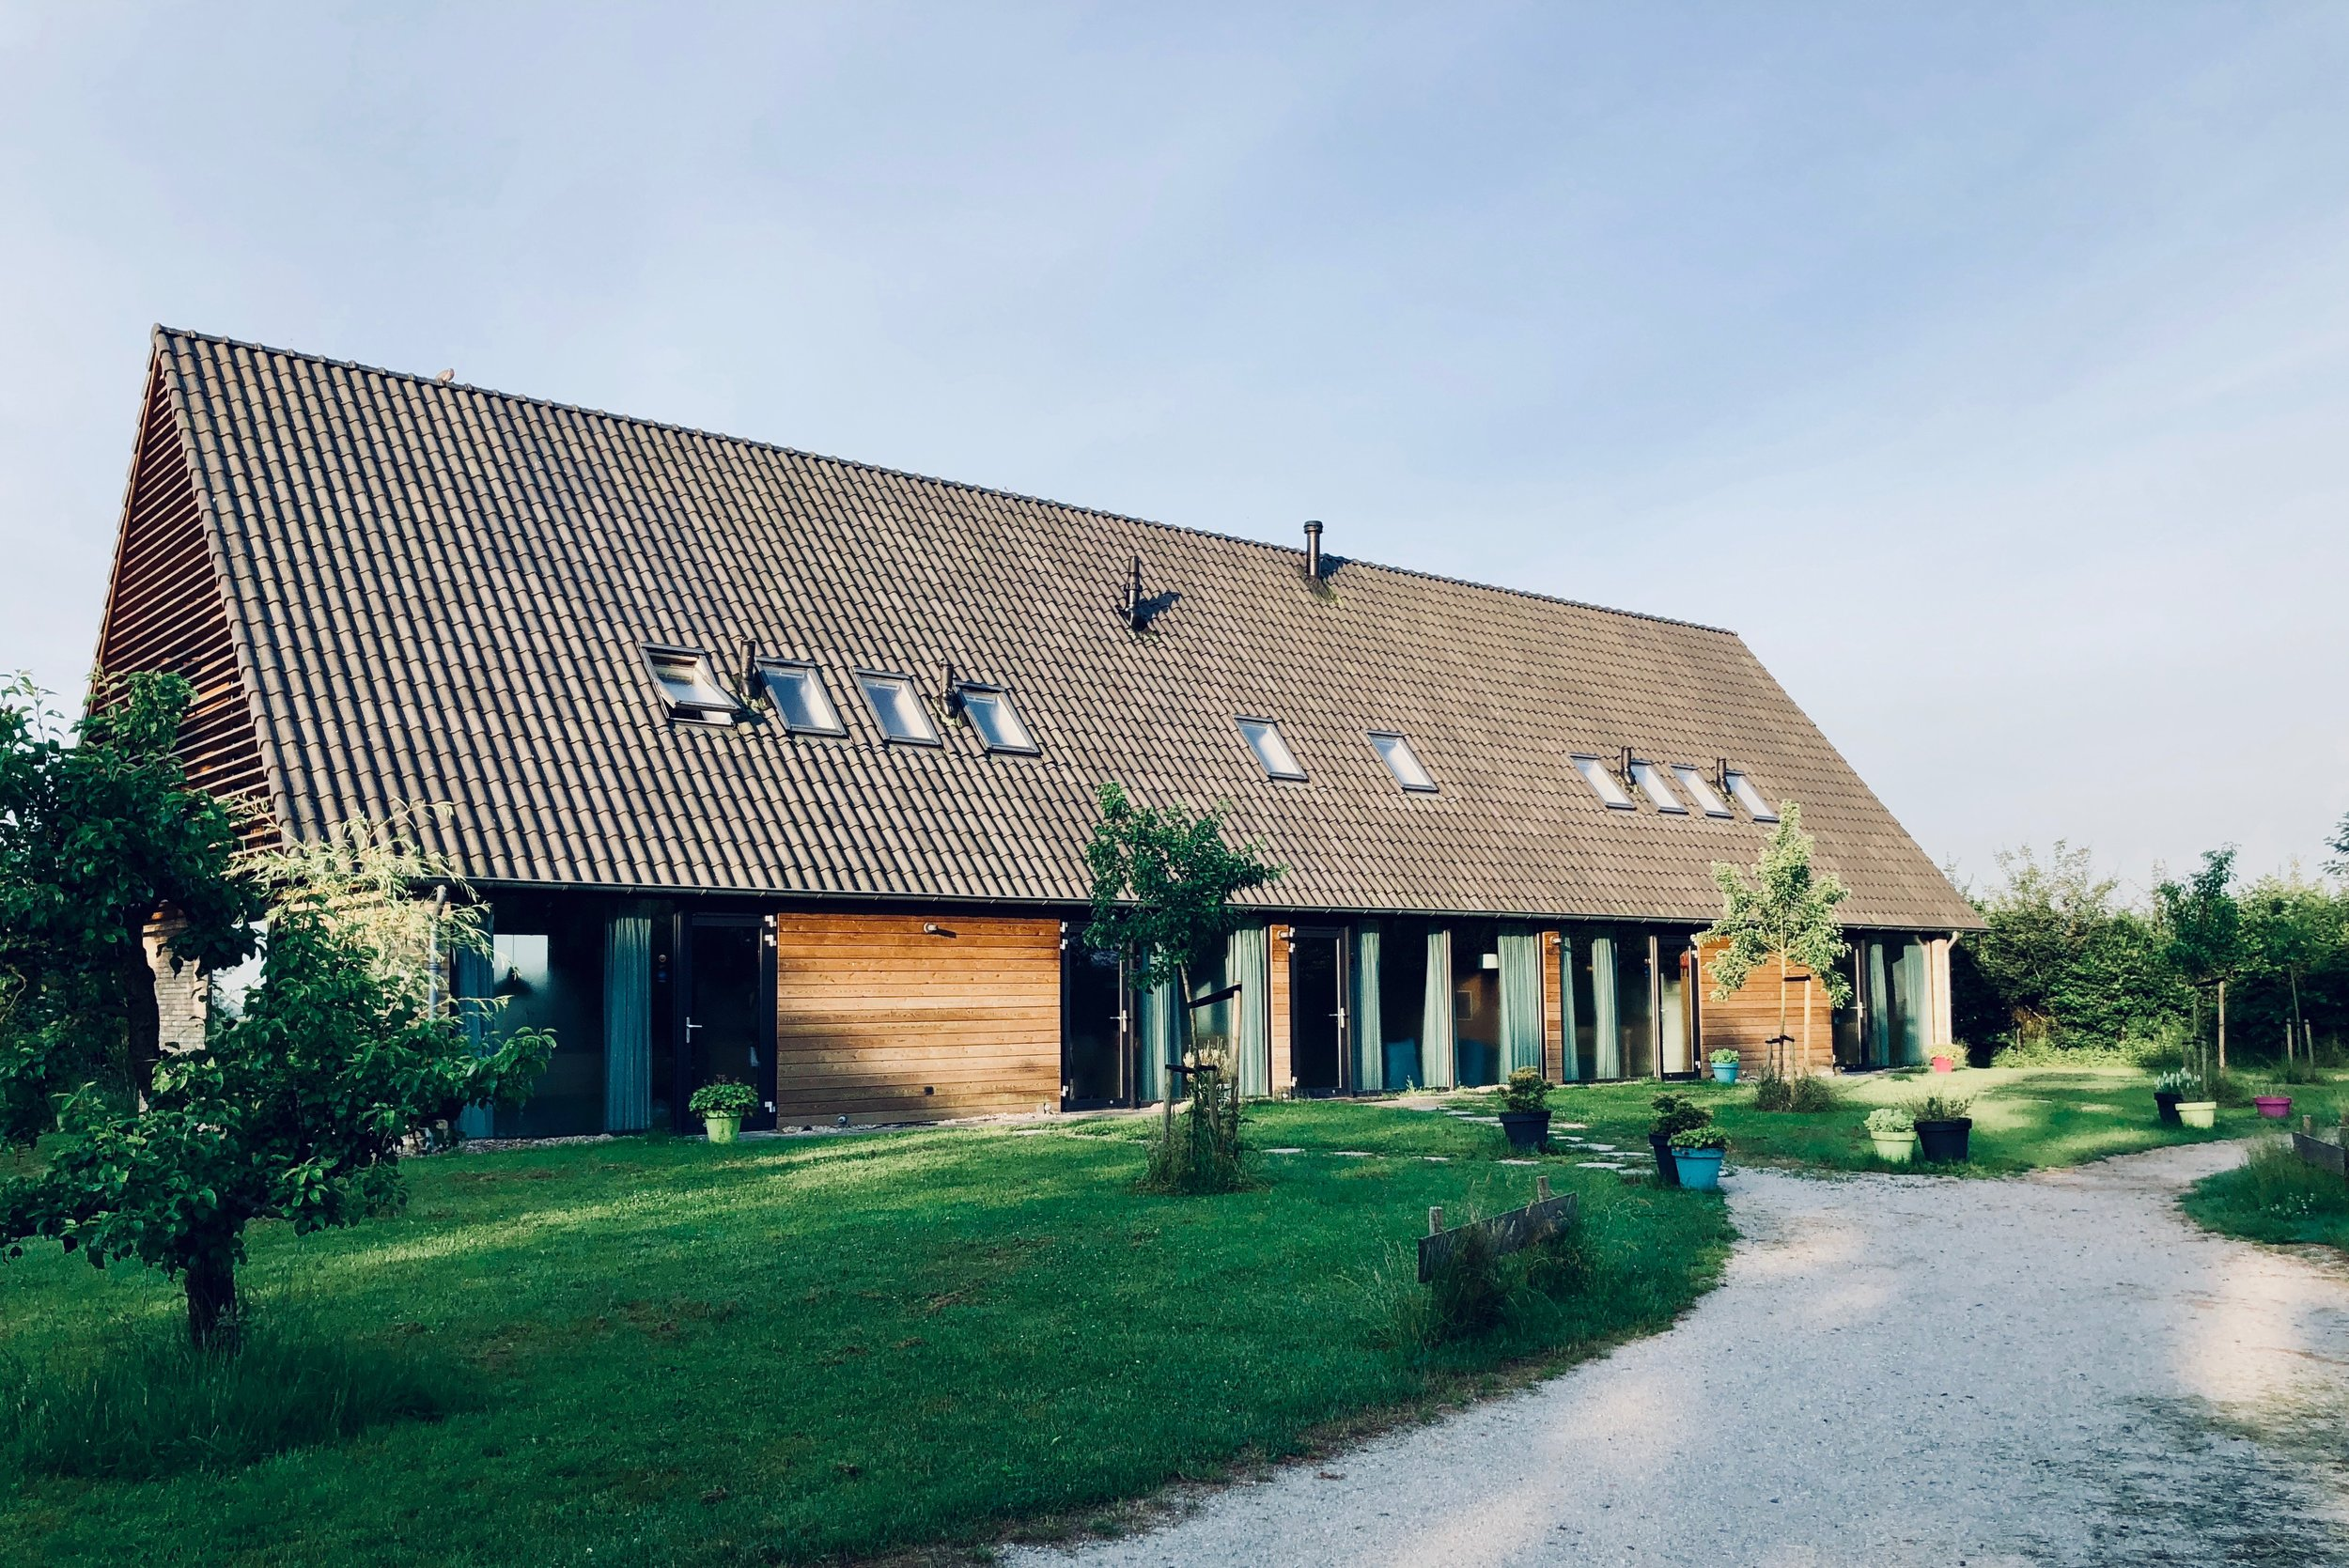 Goodbye to our Airbnb in Holland!